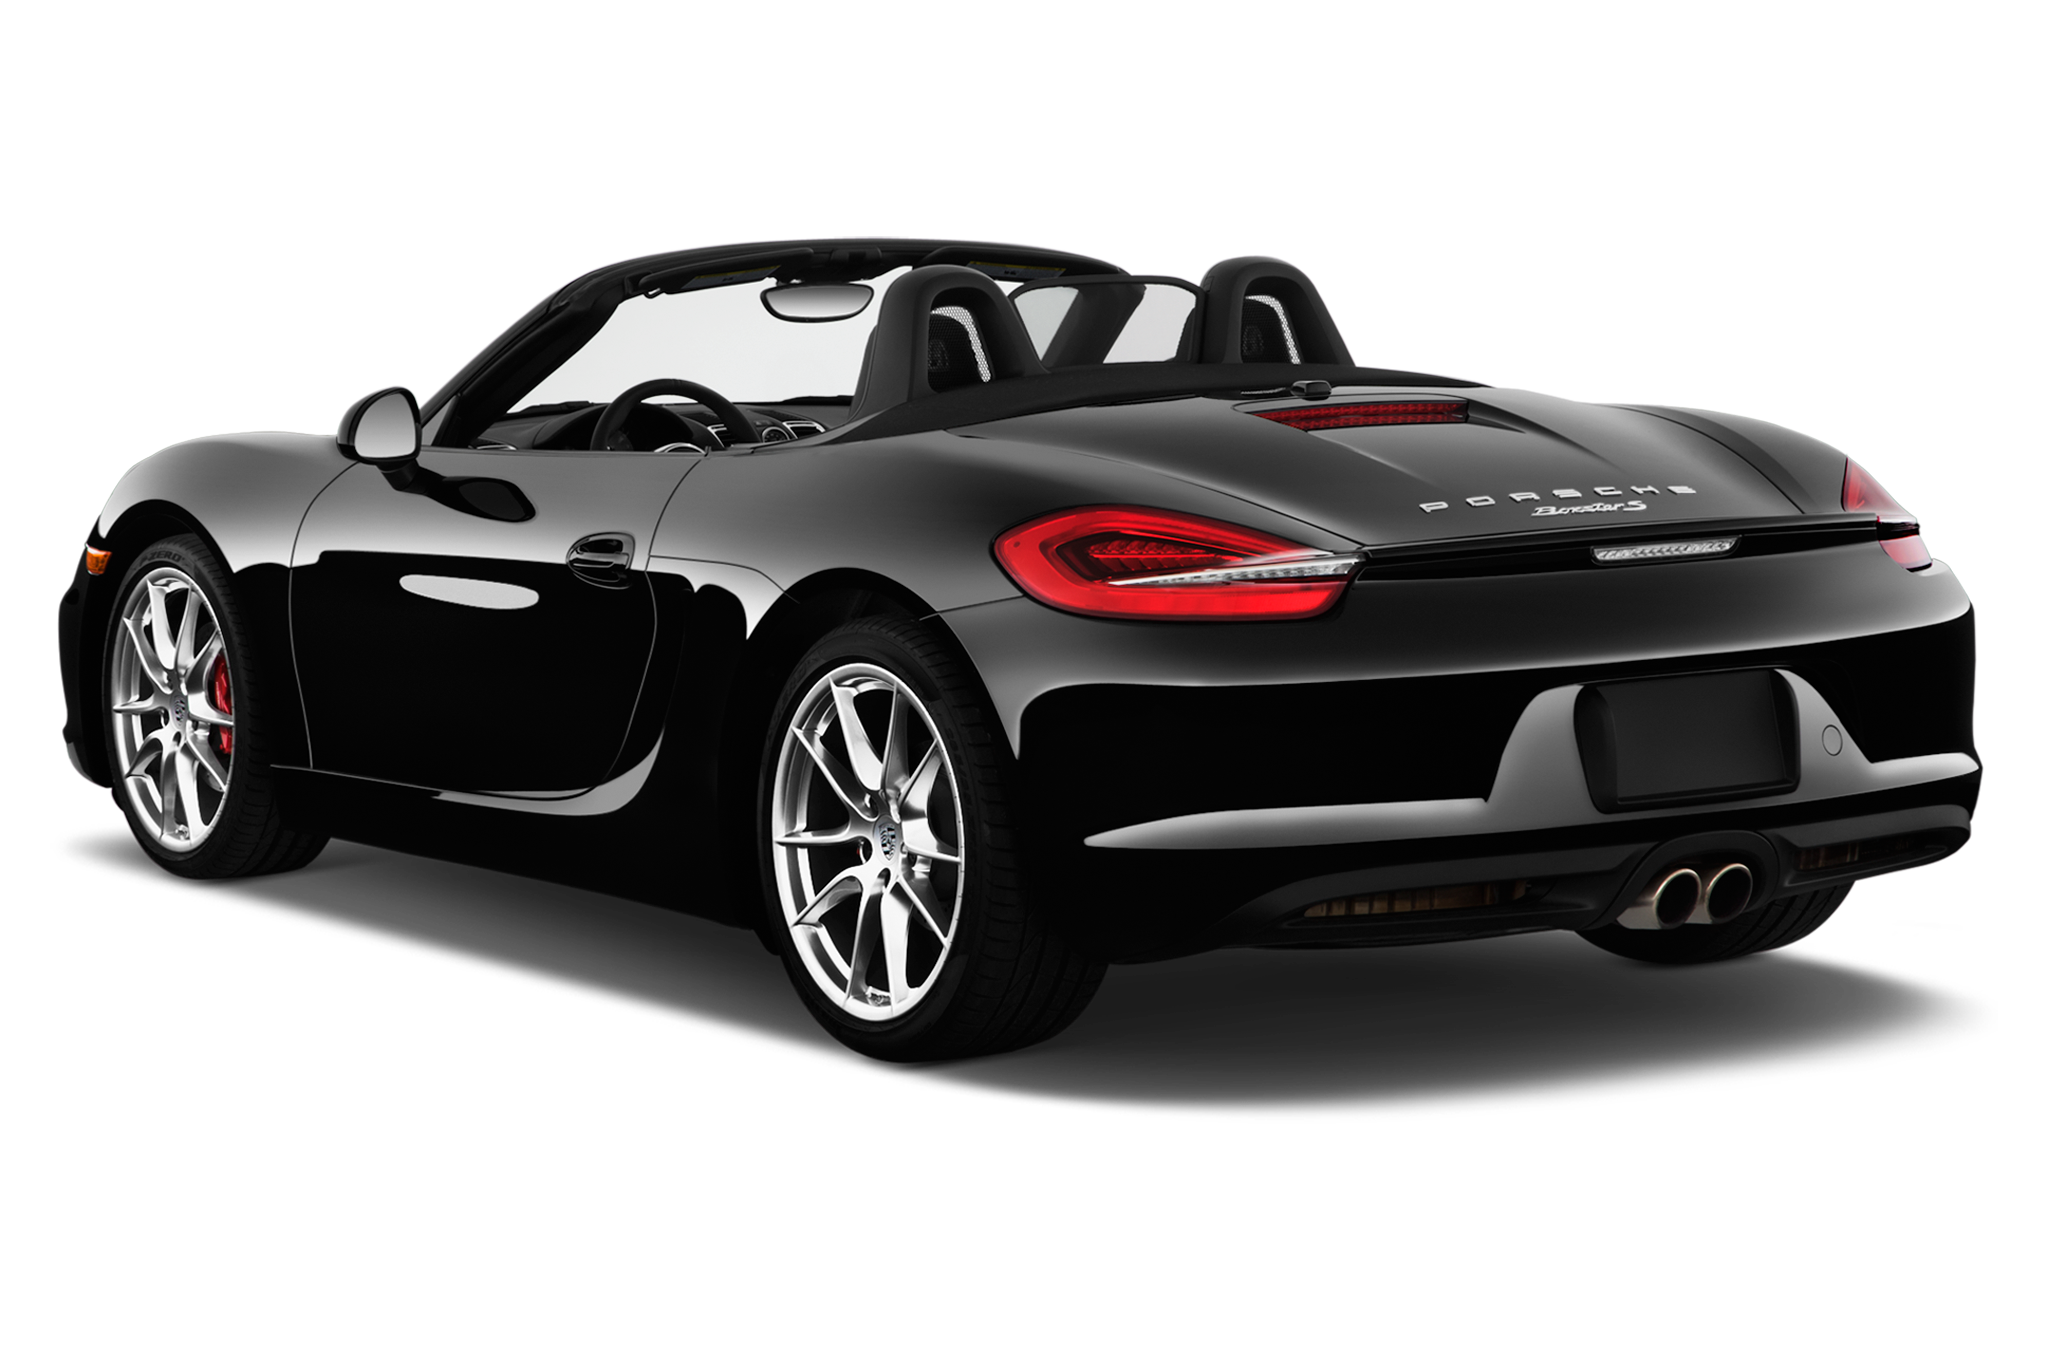 first drive: 2013 porsche boxster - automobile magazine